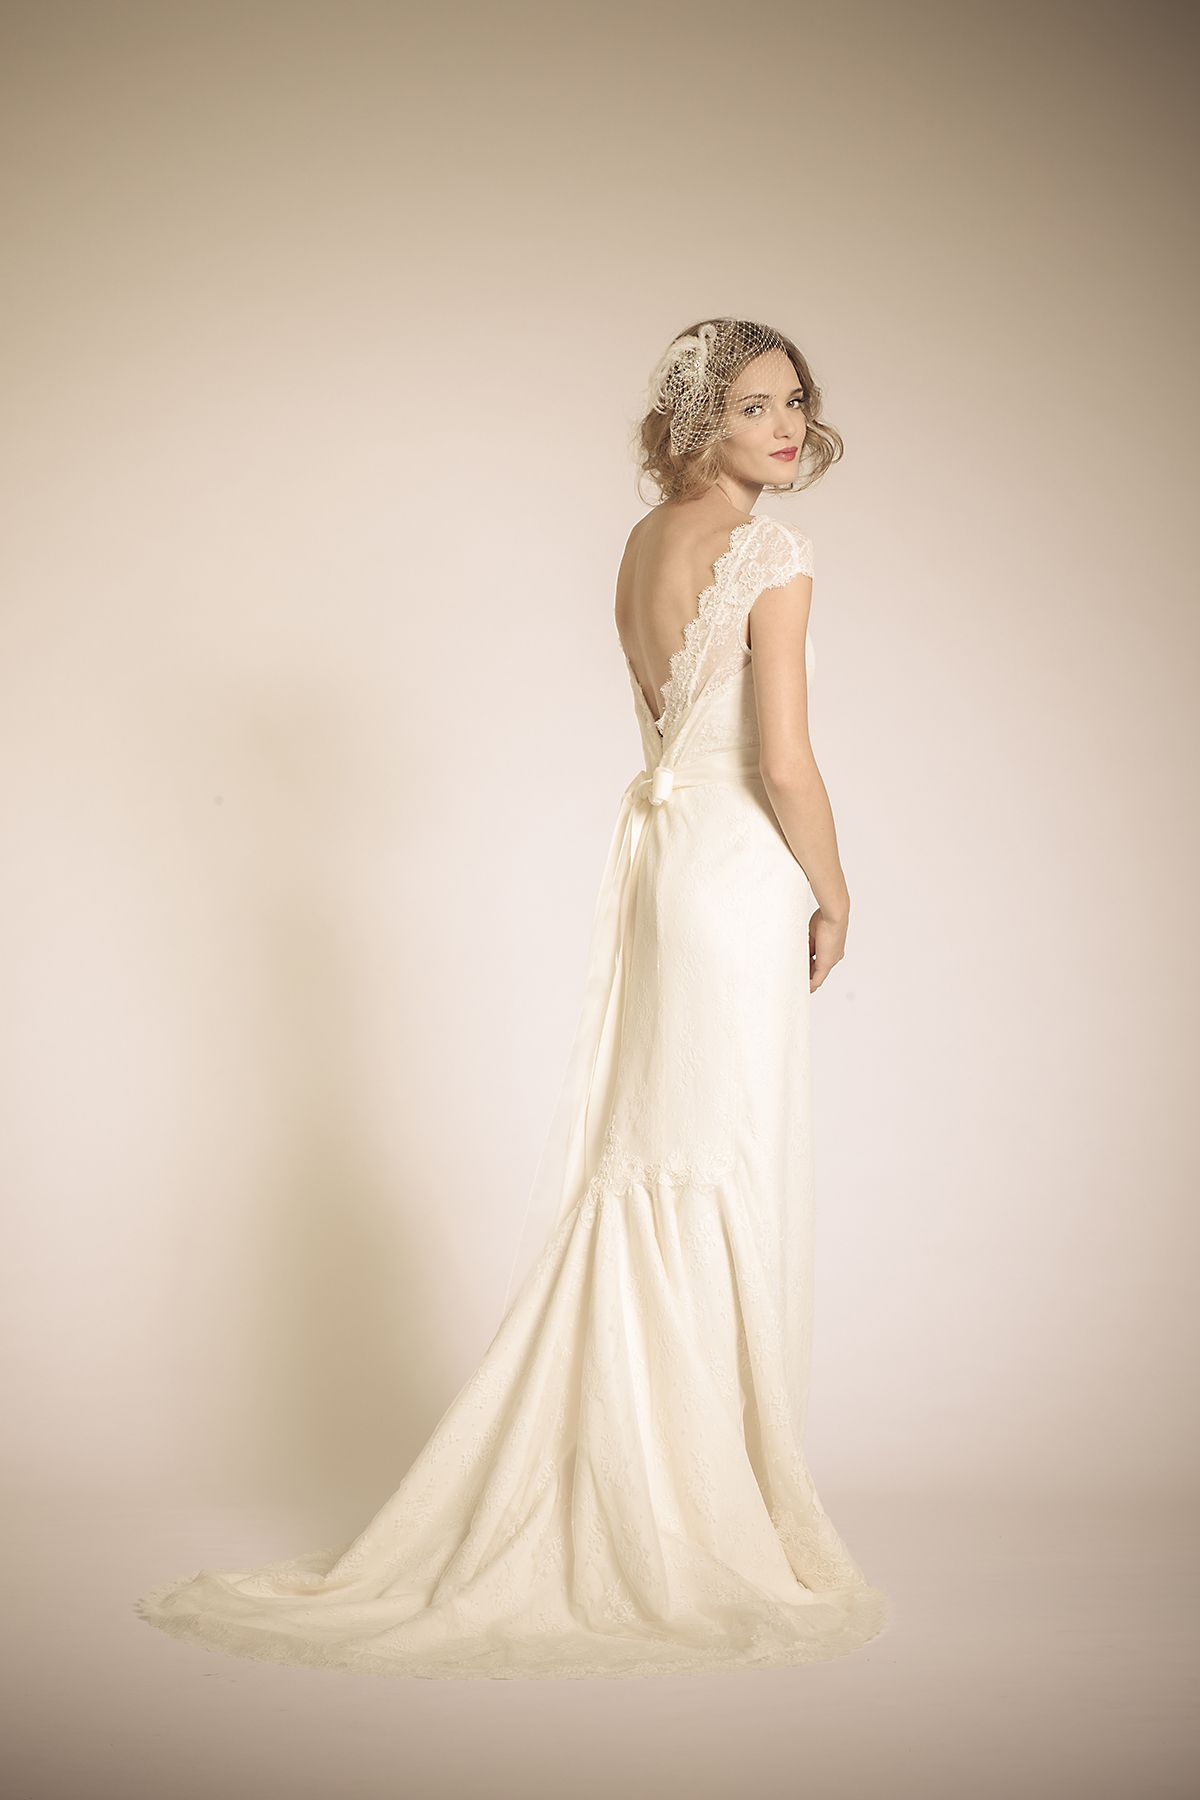 Amy Kuschel Bride San Francisco: Coretta Gown. Layers of Lace, grace ...